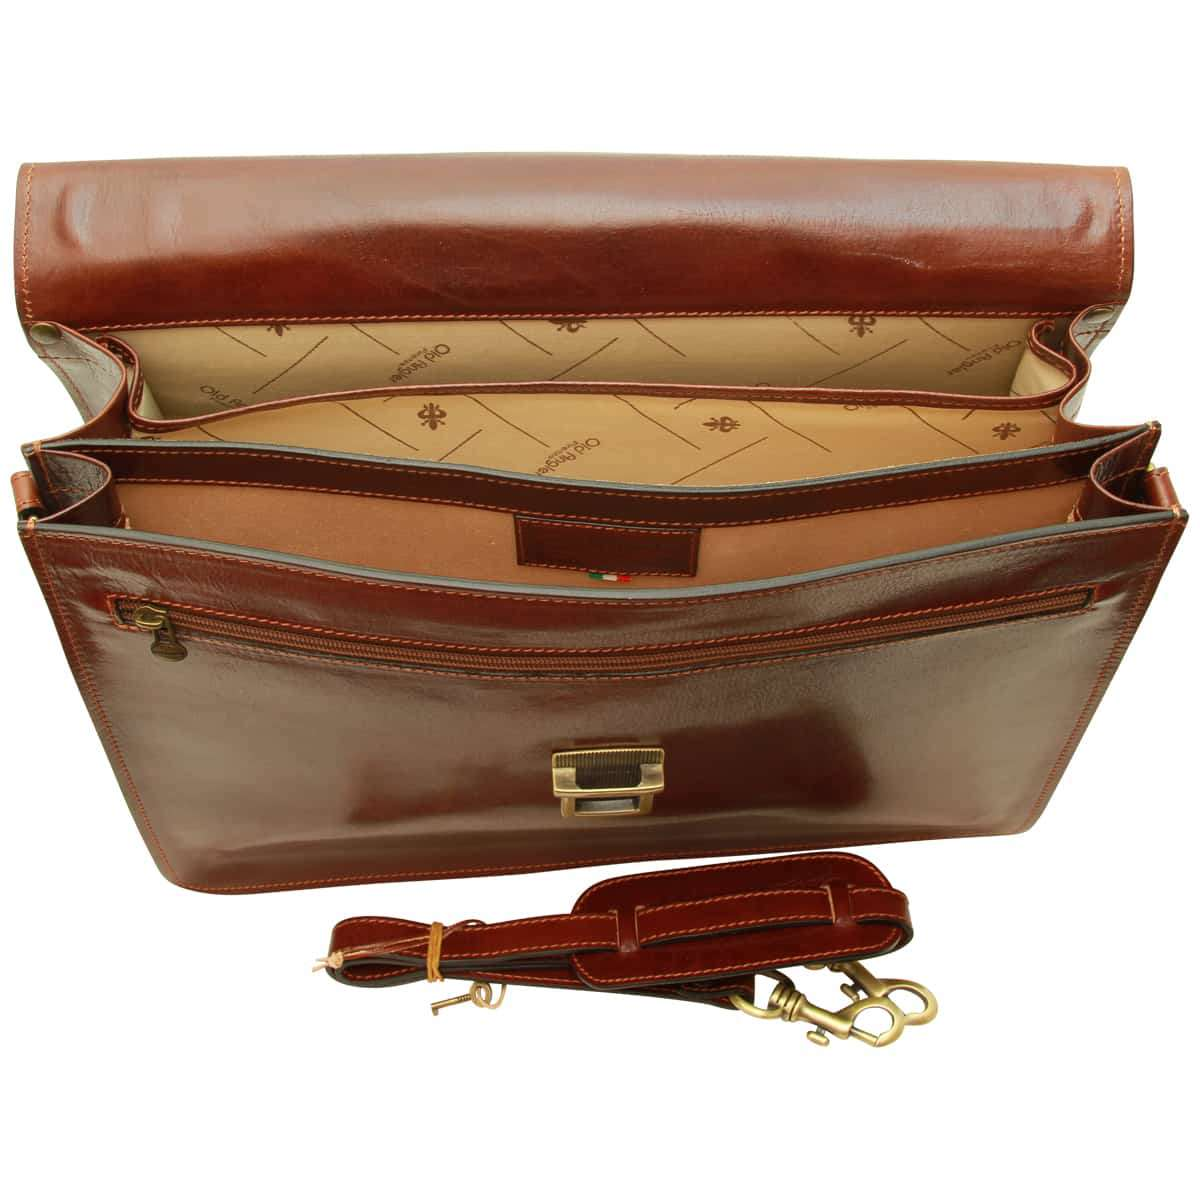 Leather Laptop Briefcase - Brown | 052805MA E | Old Angler Firenze